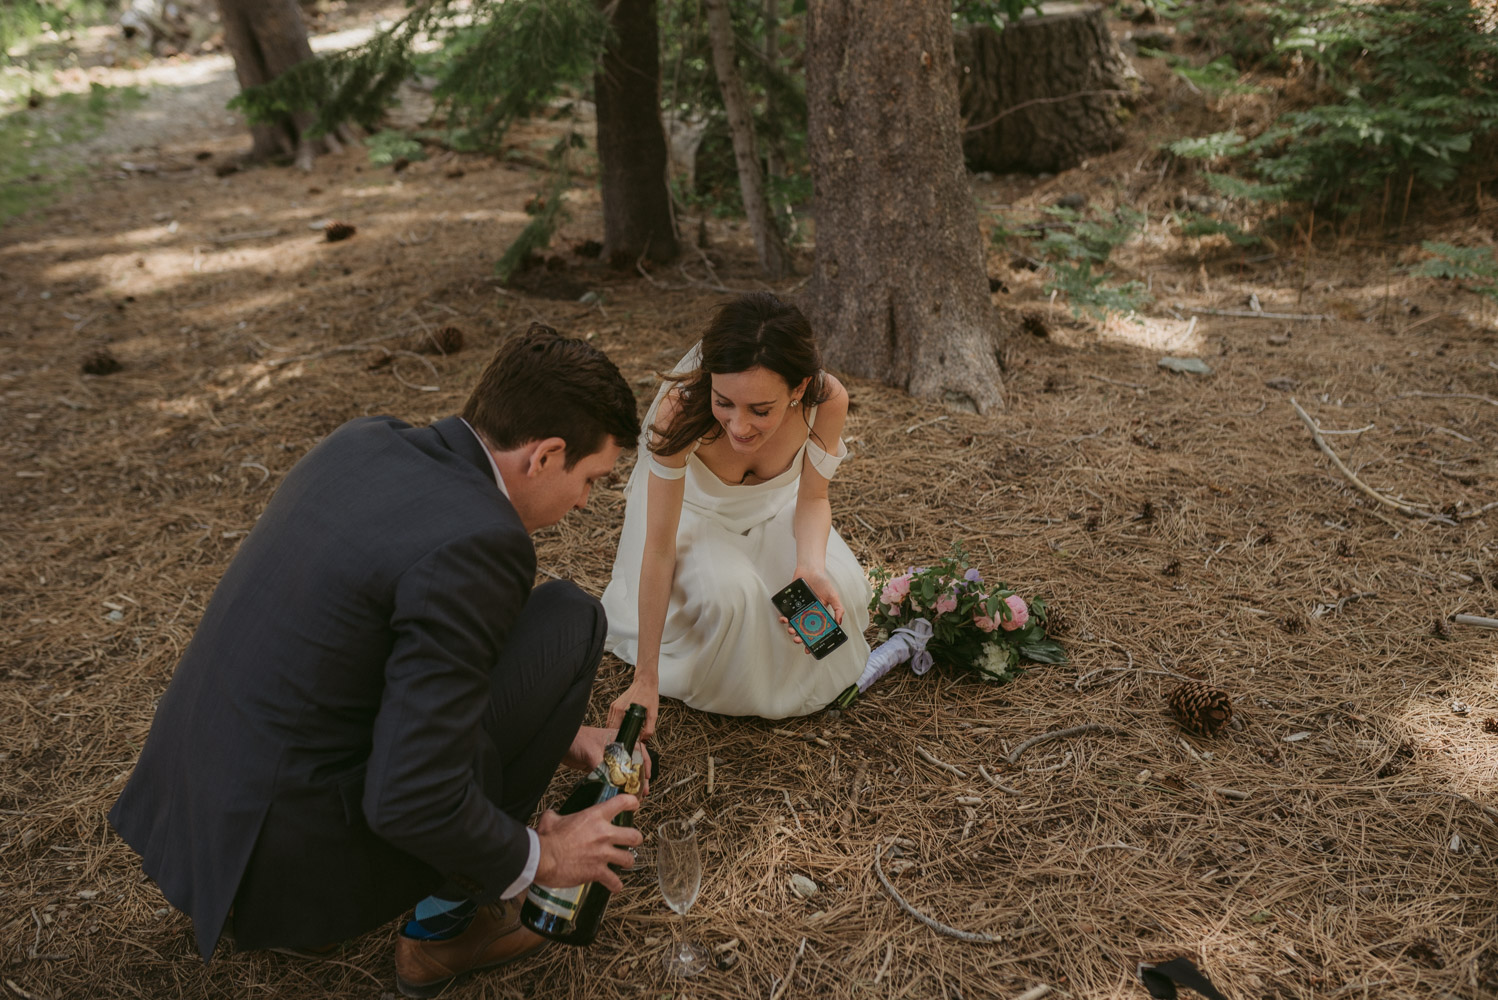 Sardine Lake Resort, Sierra Buttes elopement couple pouring champagne photo